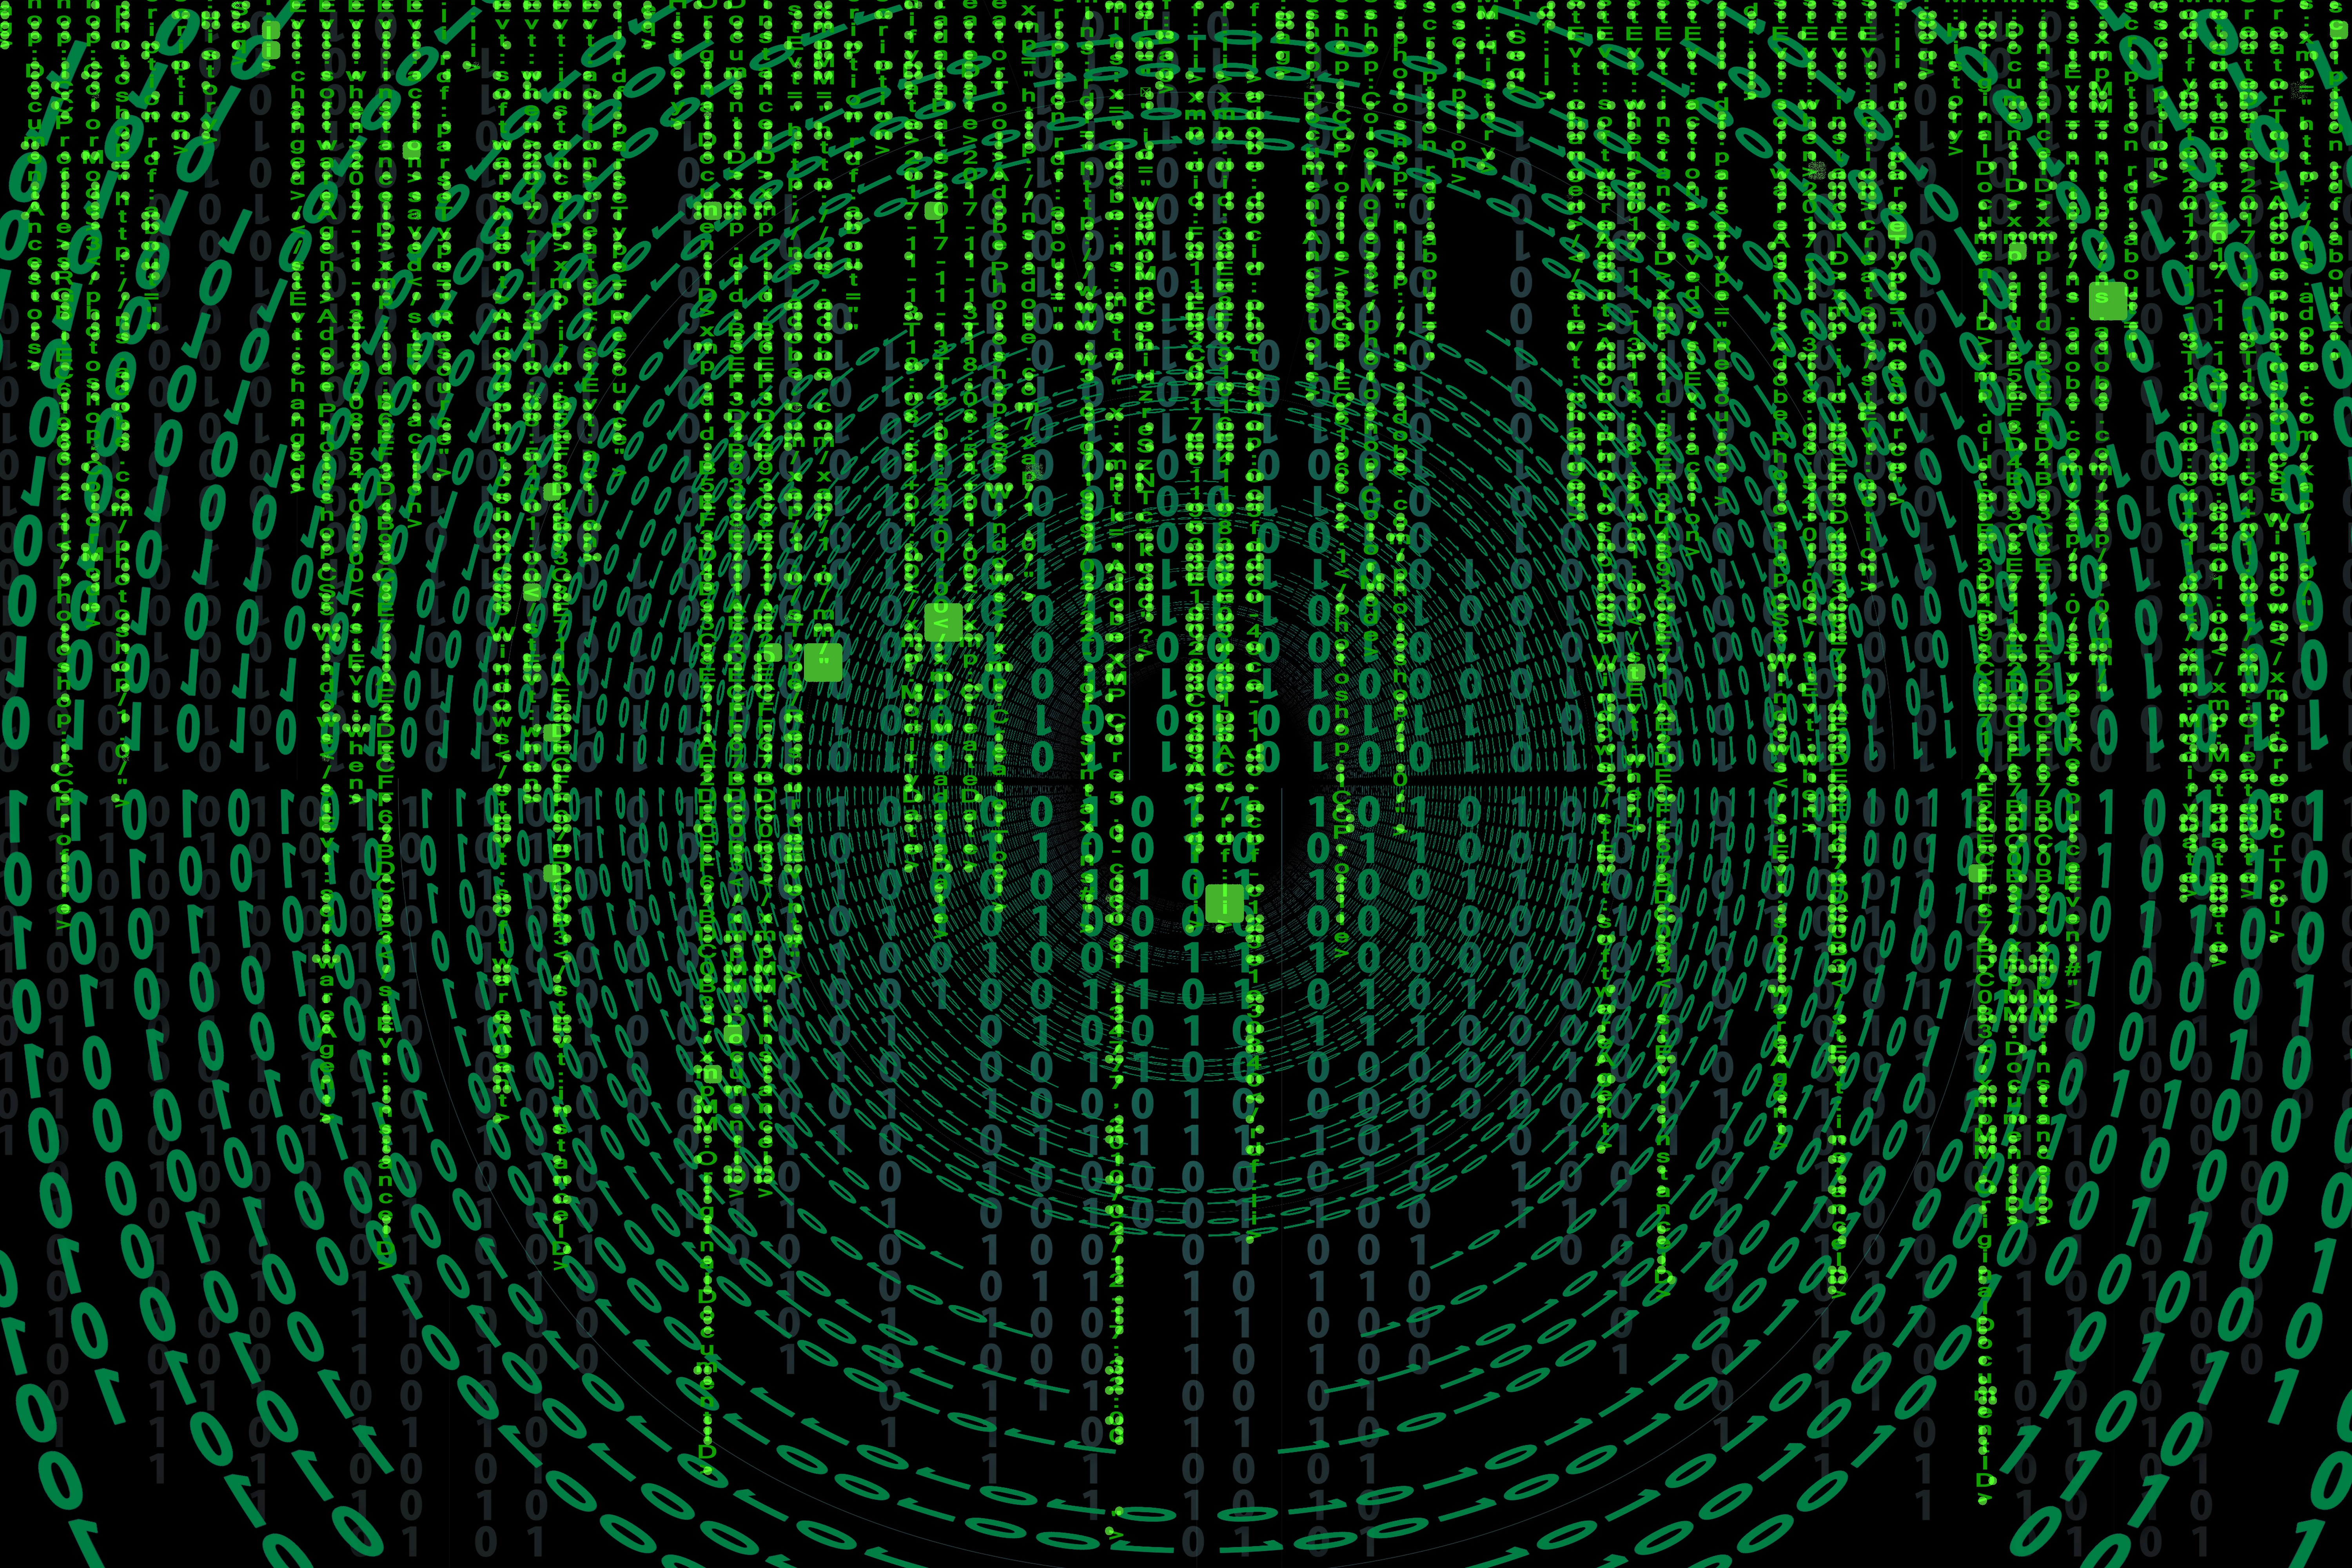 Matrix 5k hd computer 4k wallpapers images backgrounds photos and pictures - Matrix wallpaper download free ...